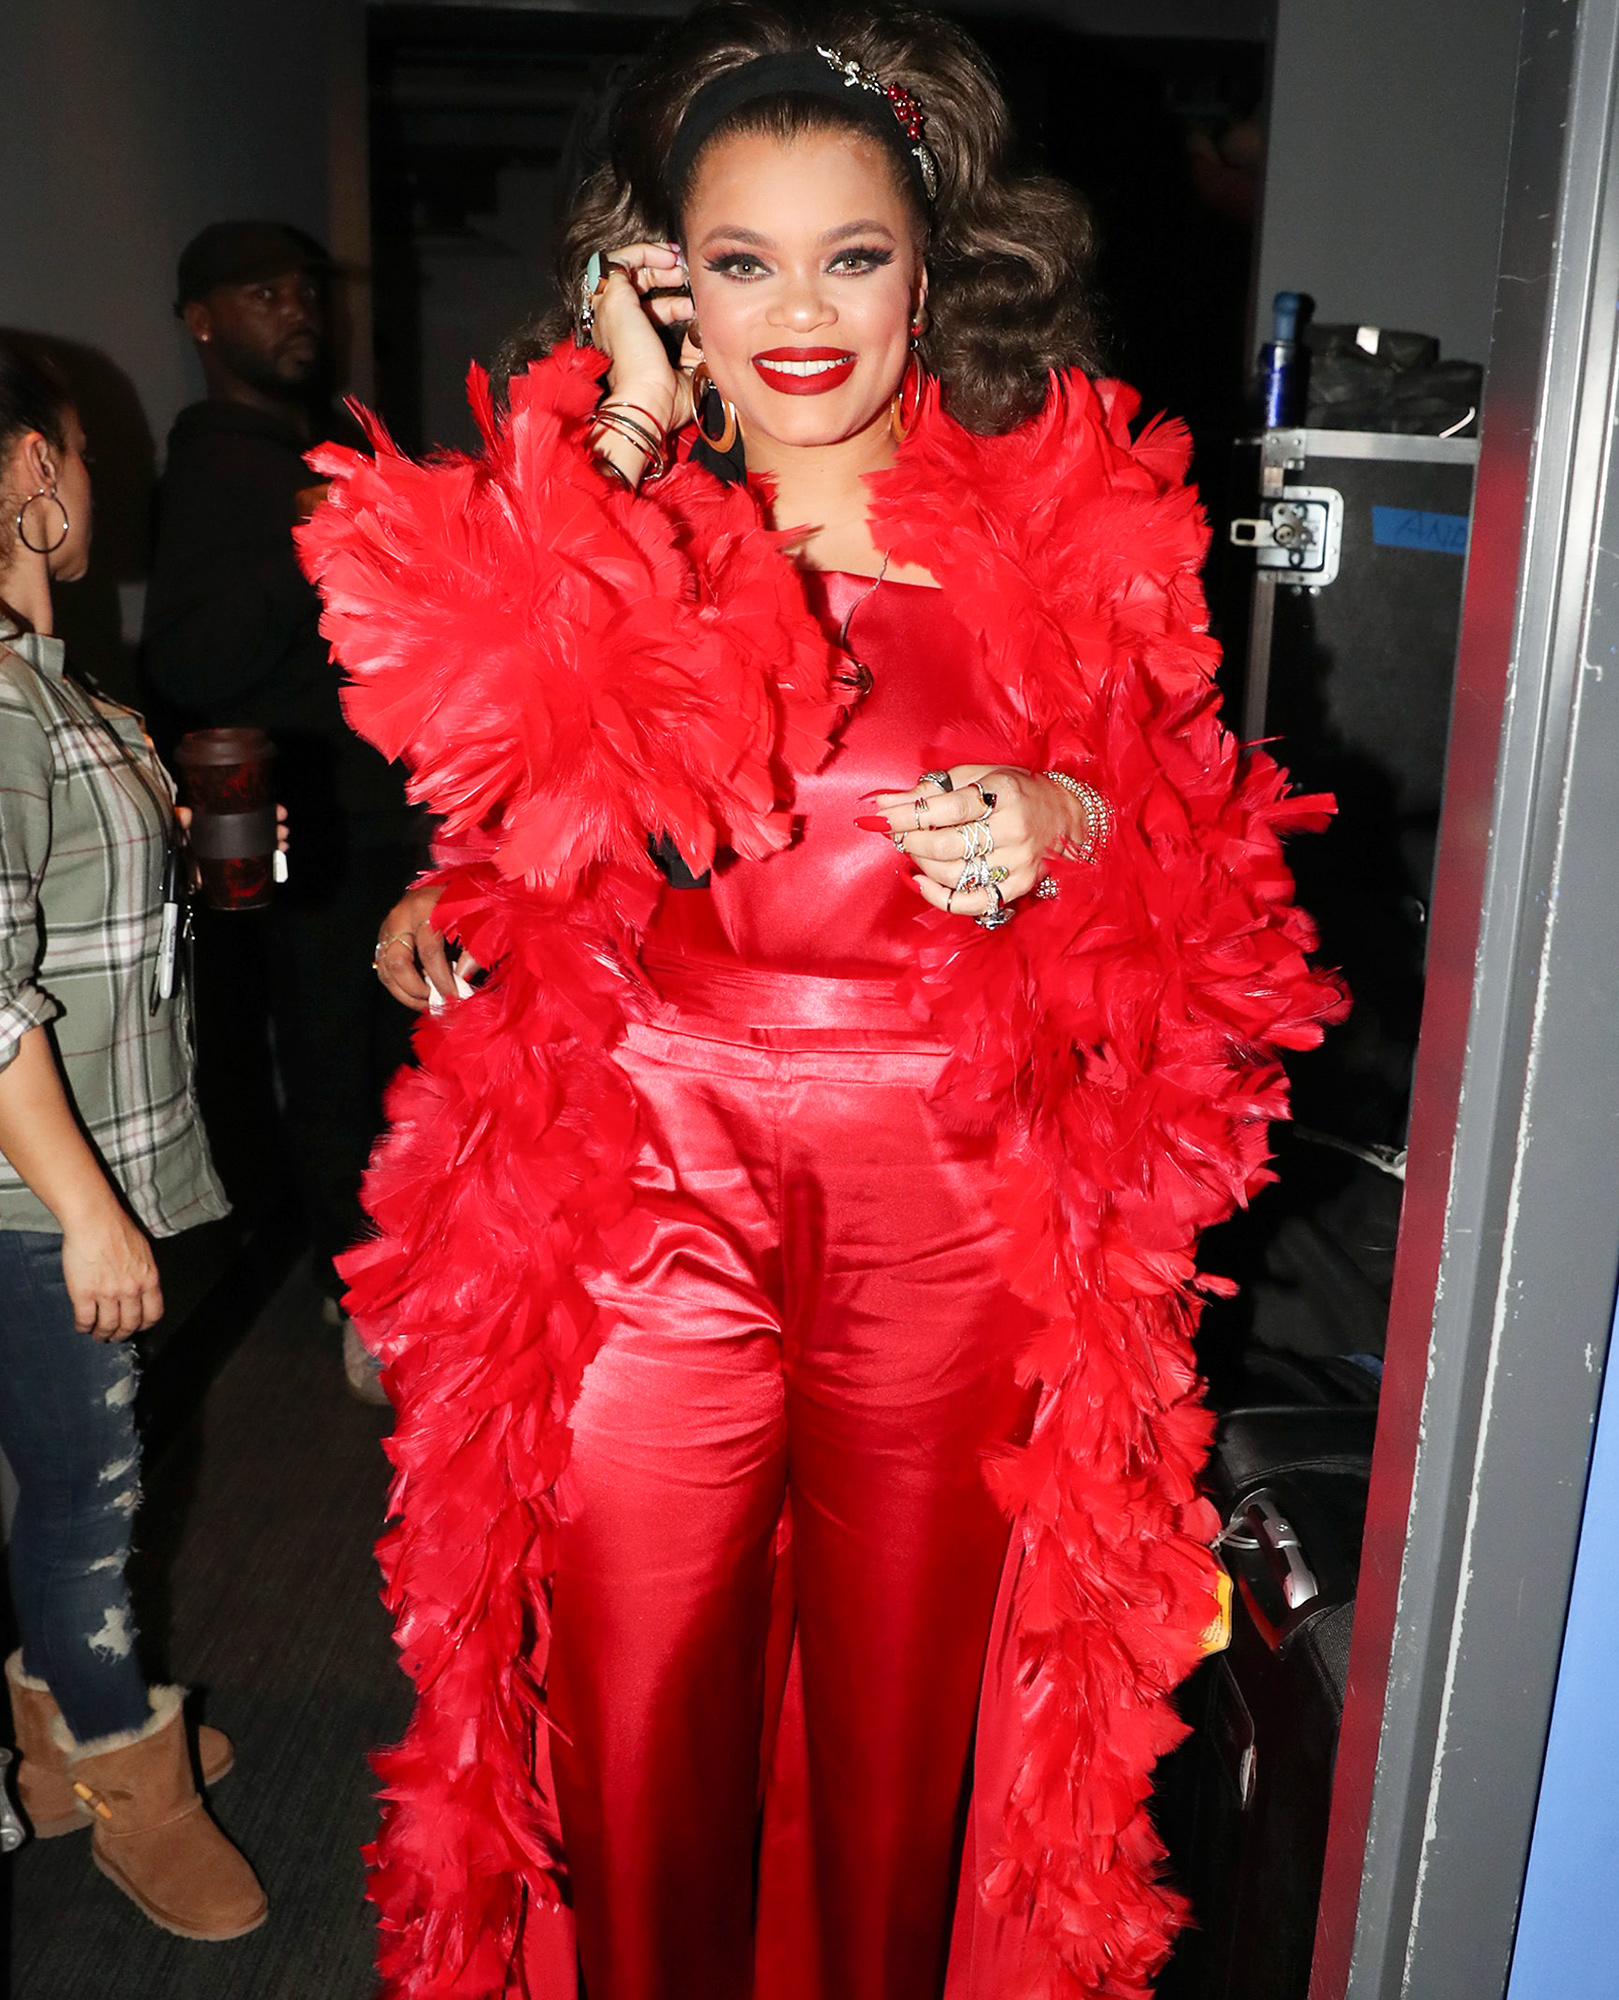 Andra Day In Concert - New York City